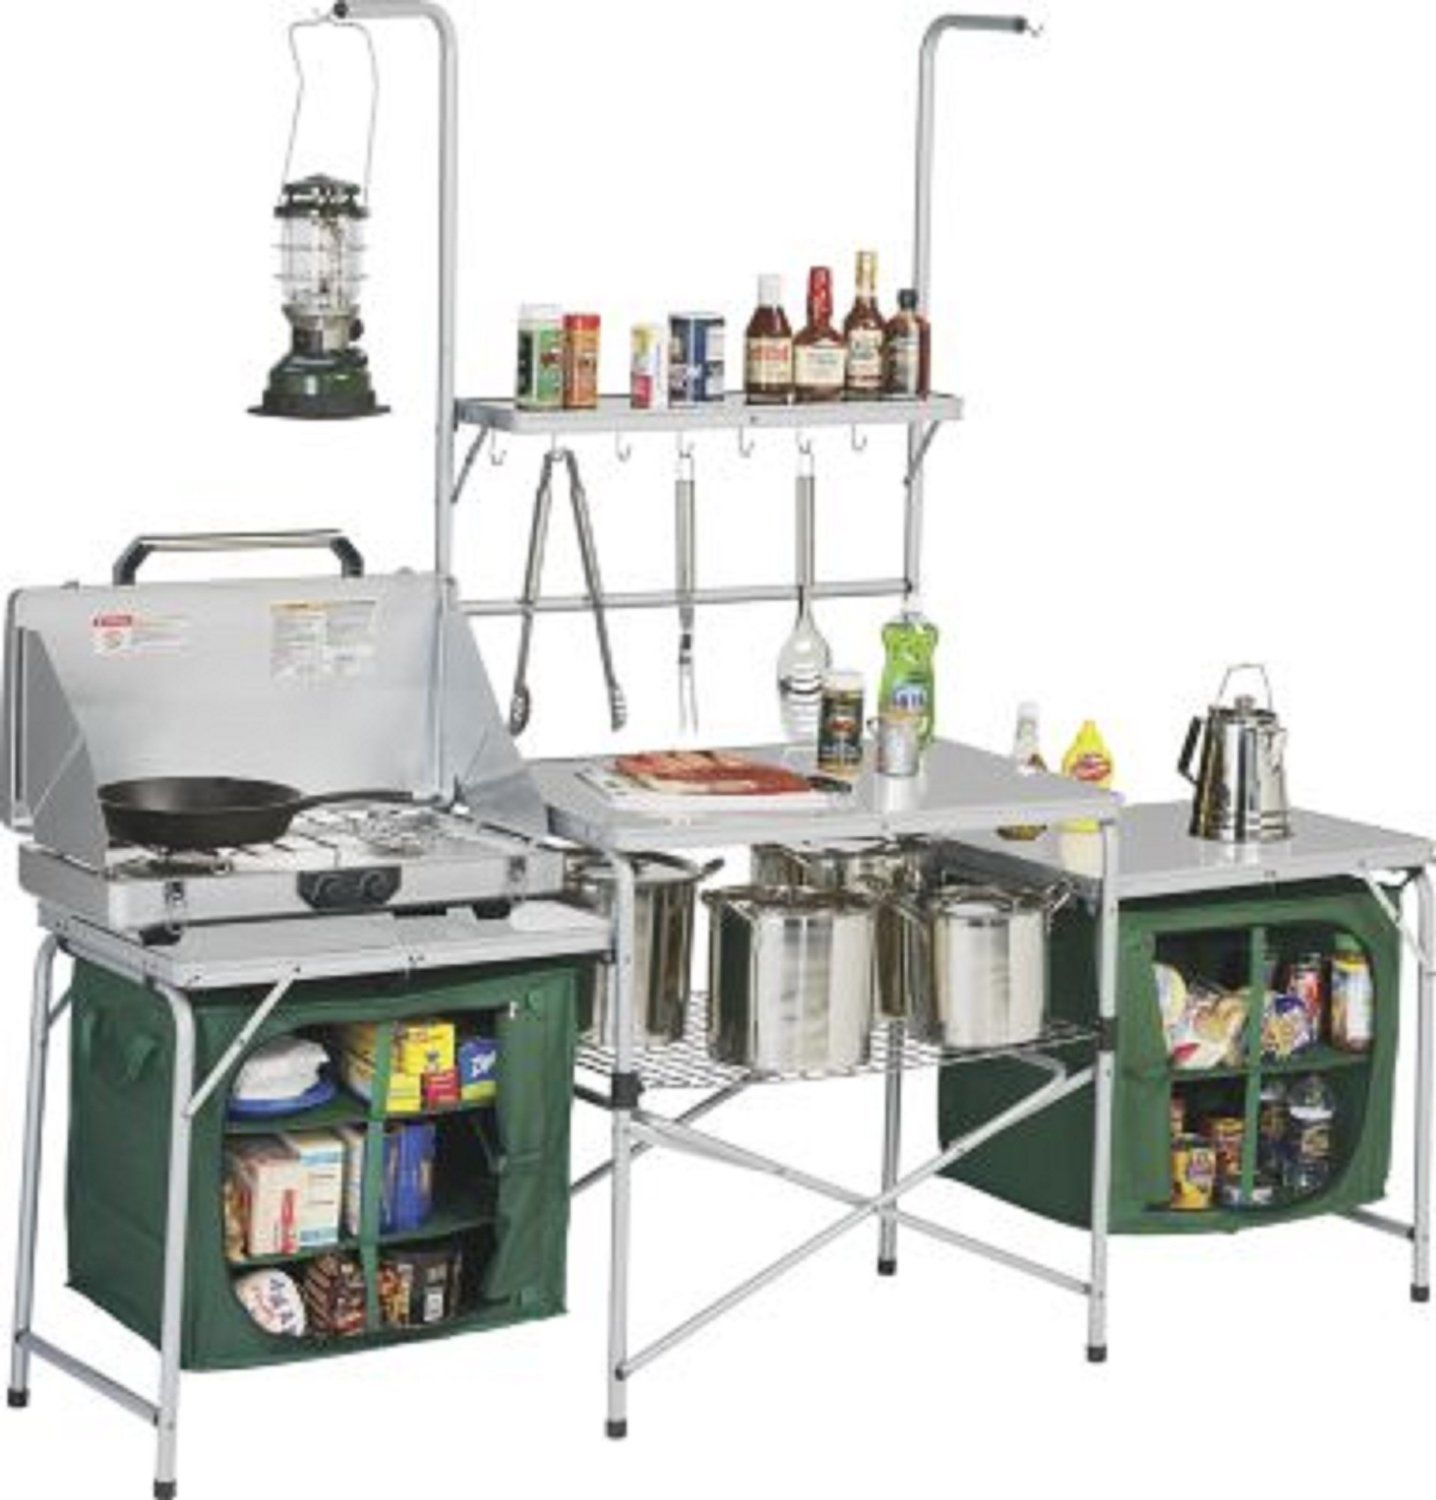 Camping Kitchen 250 Amazoncom Outdoor Deluxe Portable Camping Kitchen With Pvc